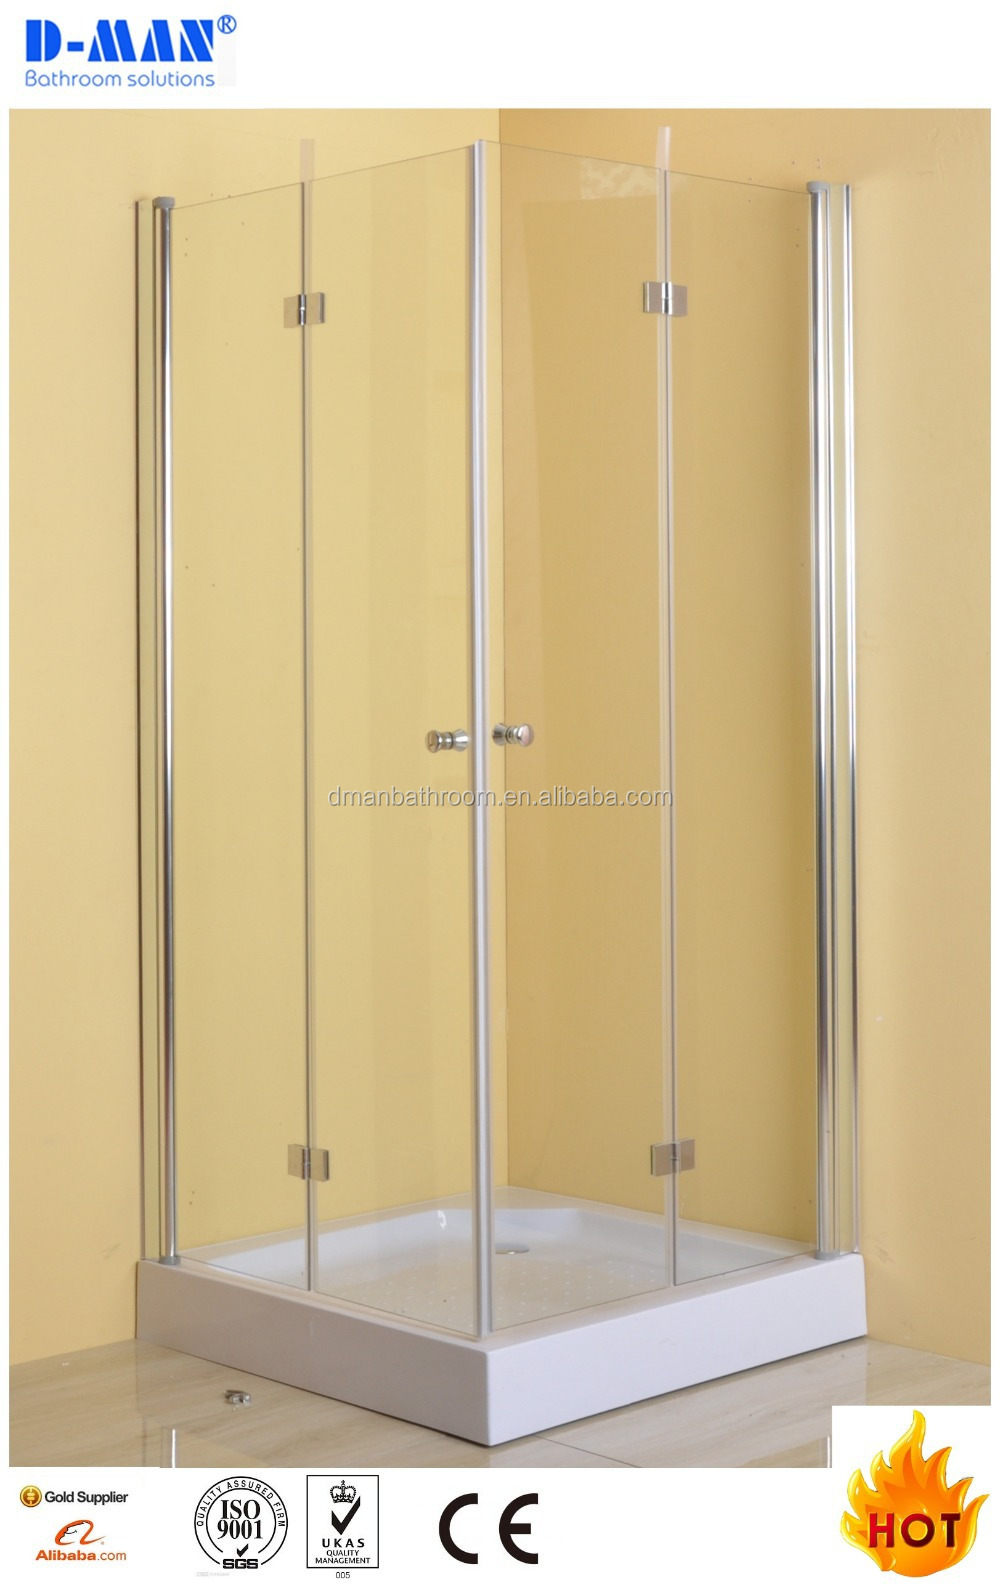 Lowes Freestanding Shower Enclosure, Lowes Freestanding Shower Enclosure  Suppliers And Manufacturers At Alibaba.com